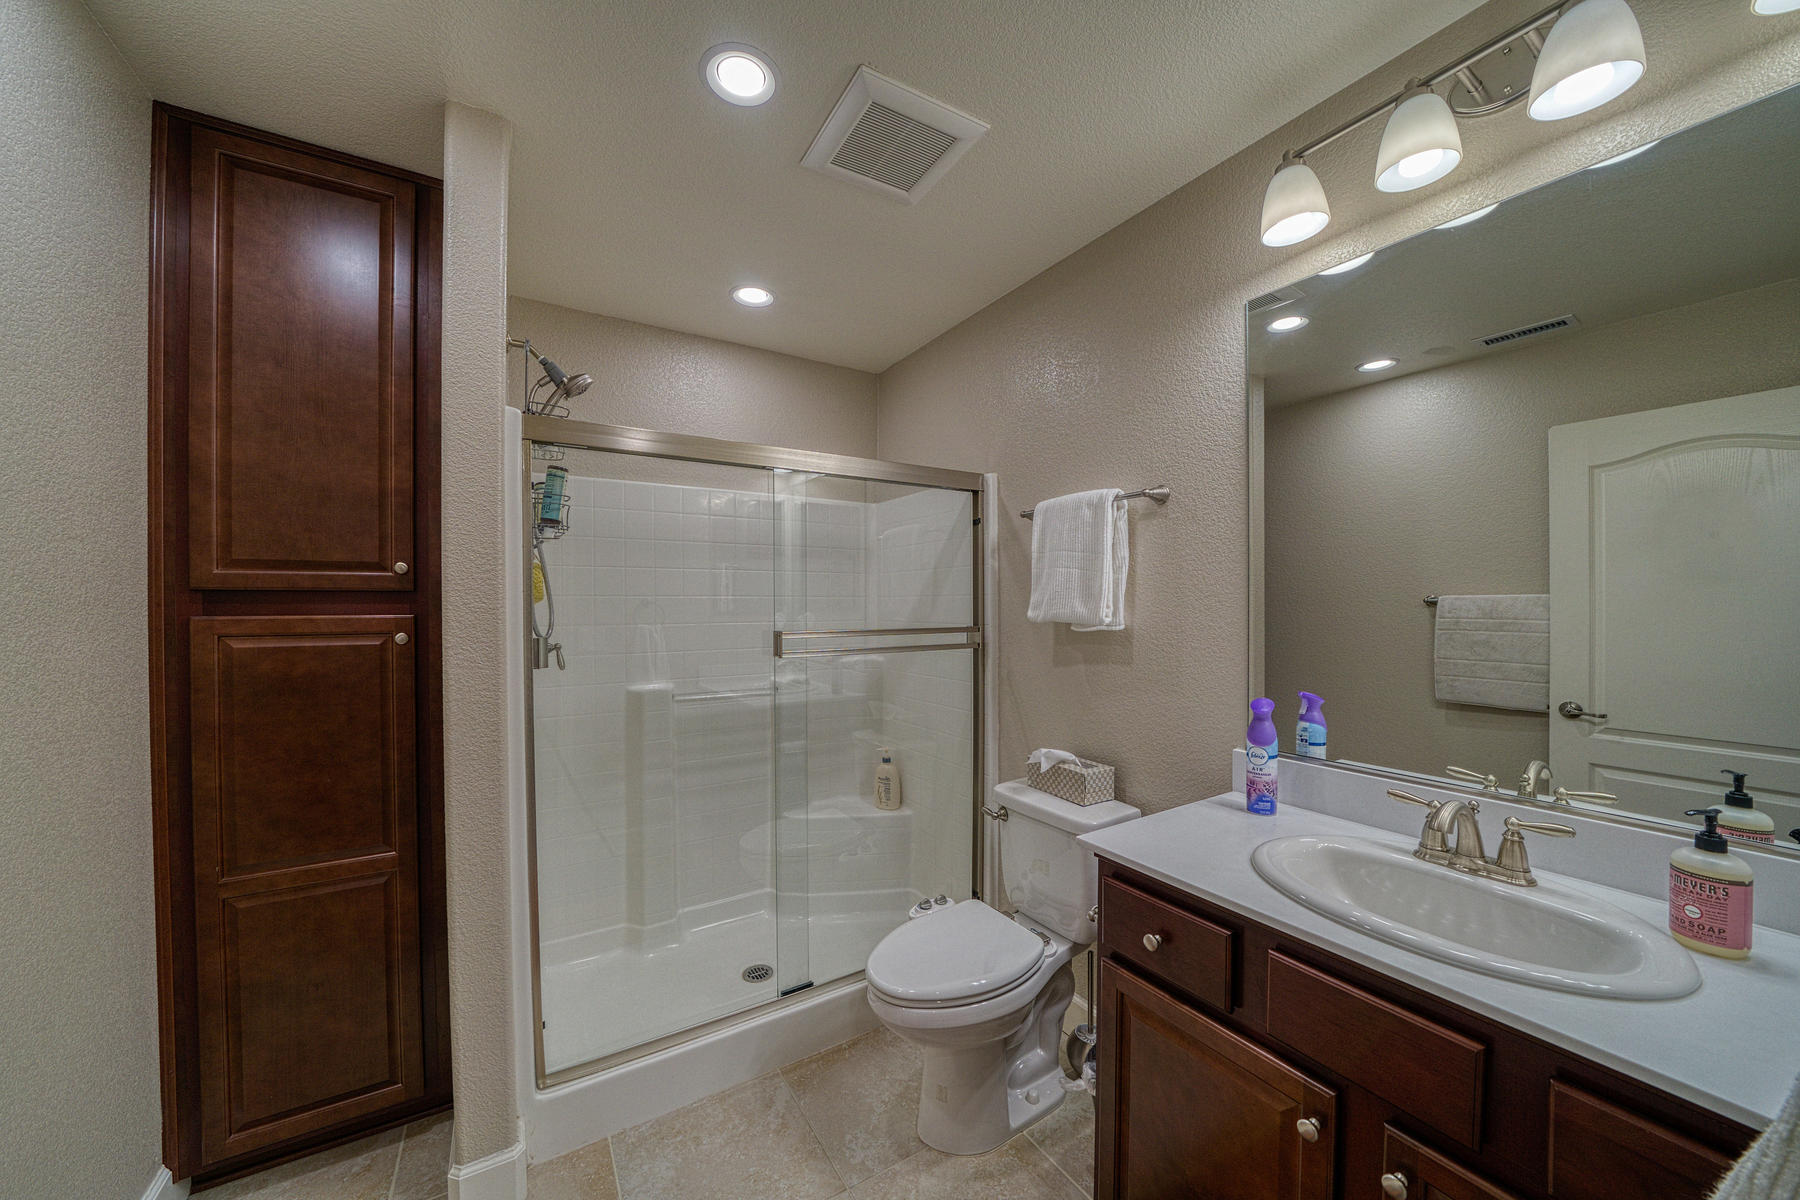 Additional photo for property listing at 6499 Cone Peak Drive, Carson City, NV 89701 6499 Cone Peak Drive Carson City, Nevada 89701 United States